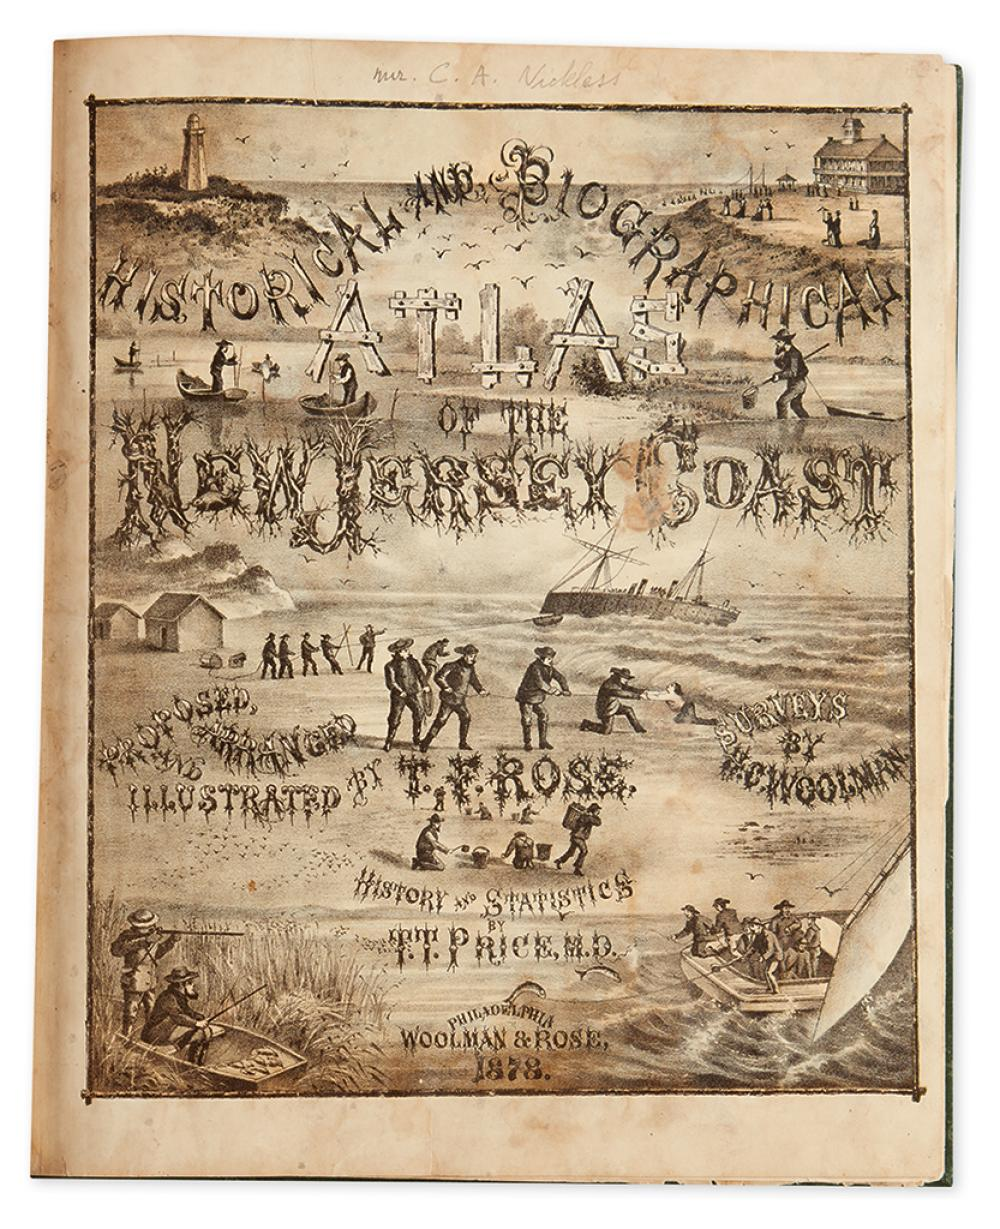 (NEW JERSEY.) Rose, T.F. & Woolman, H.C. Historical and Biographical Atlas of the New Jersey Coast.